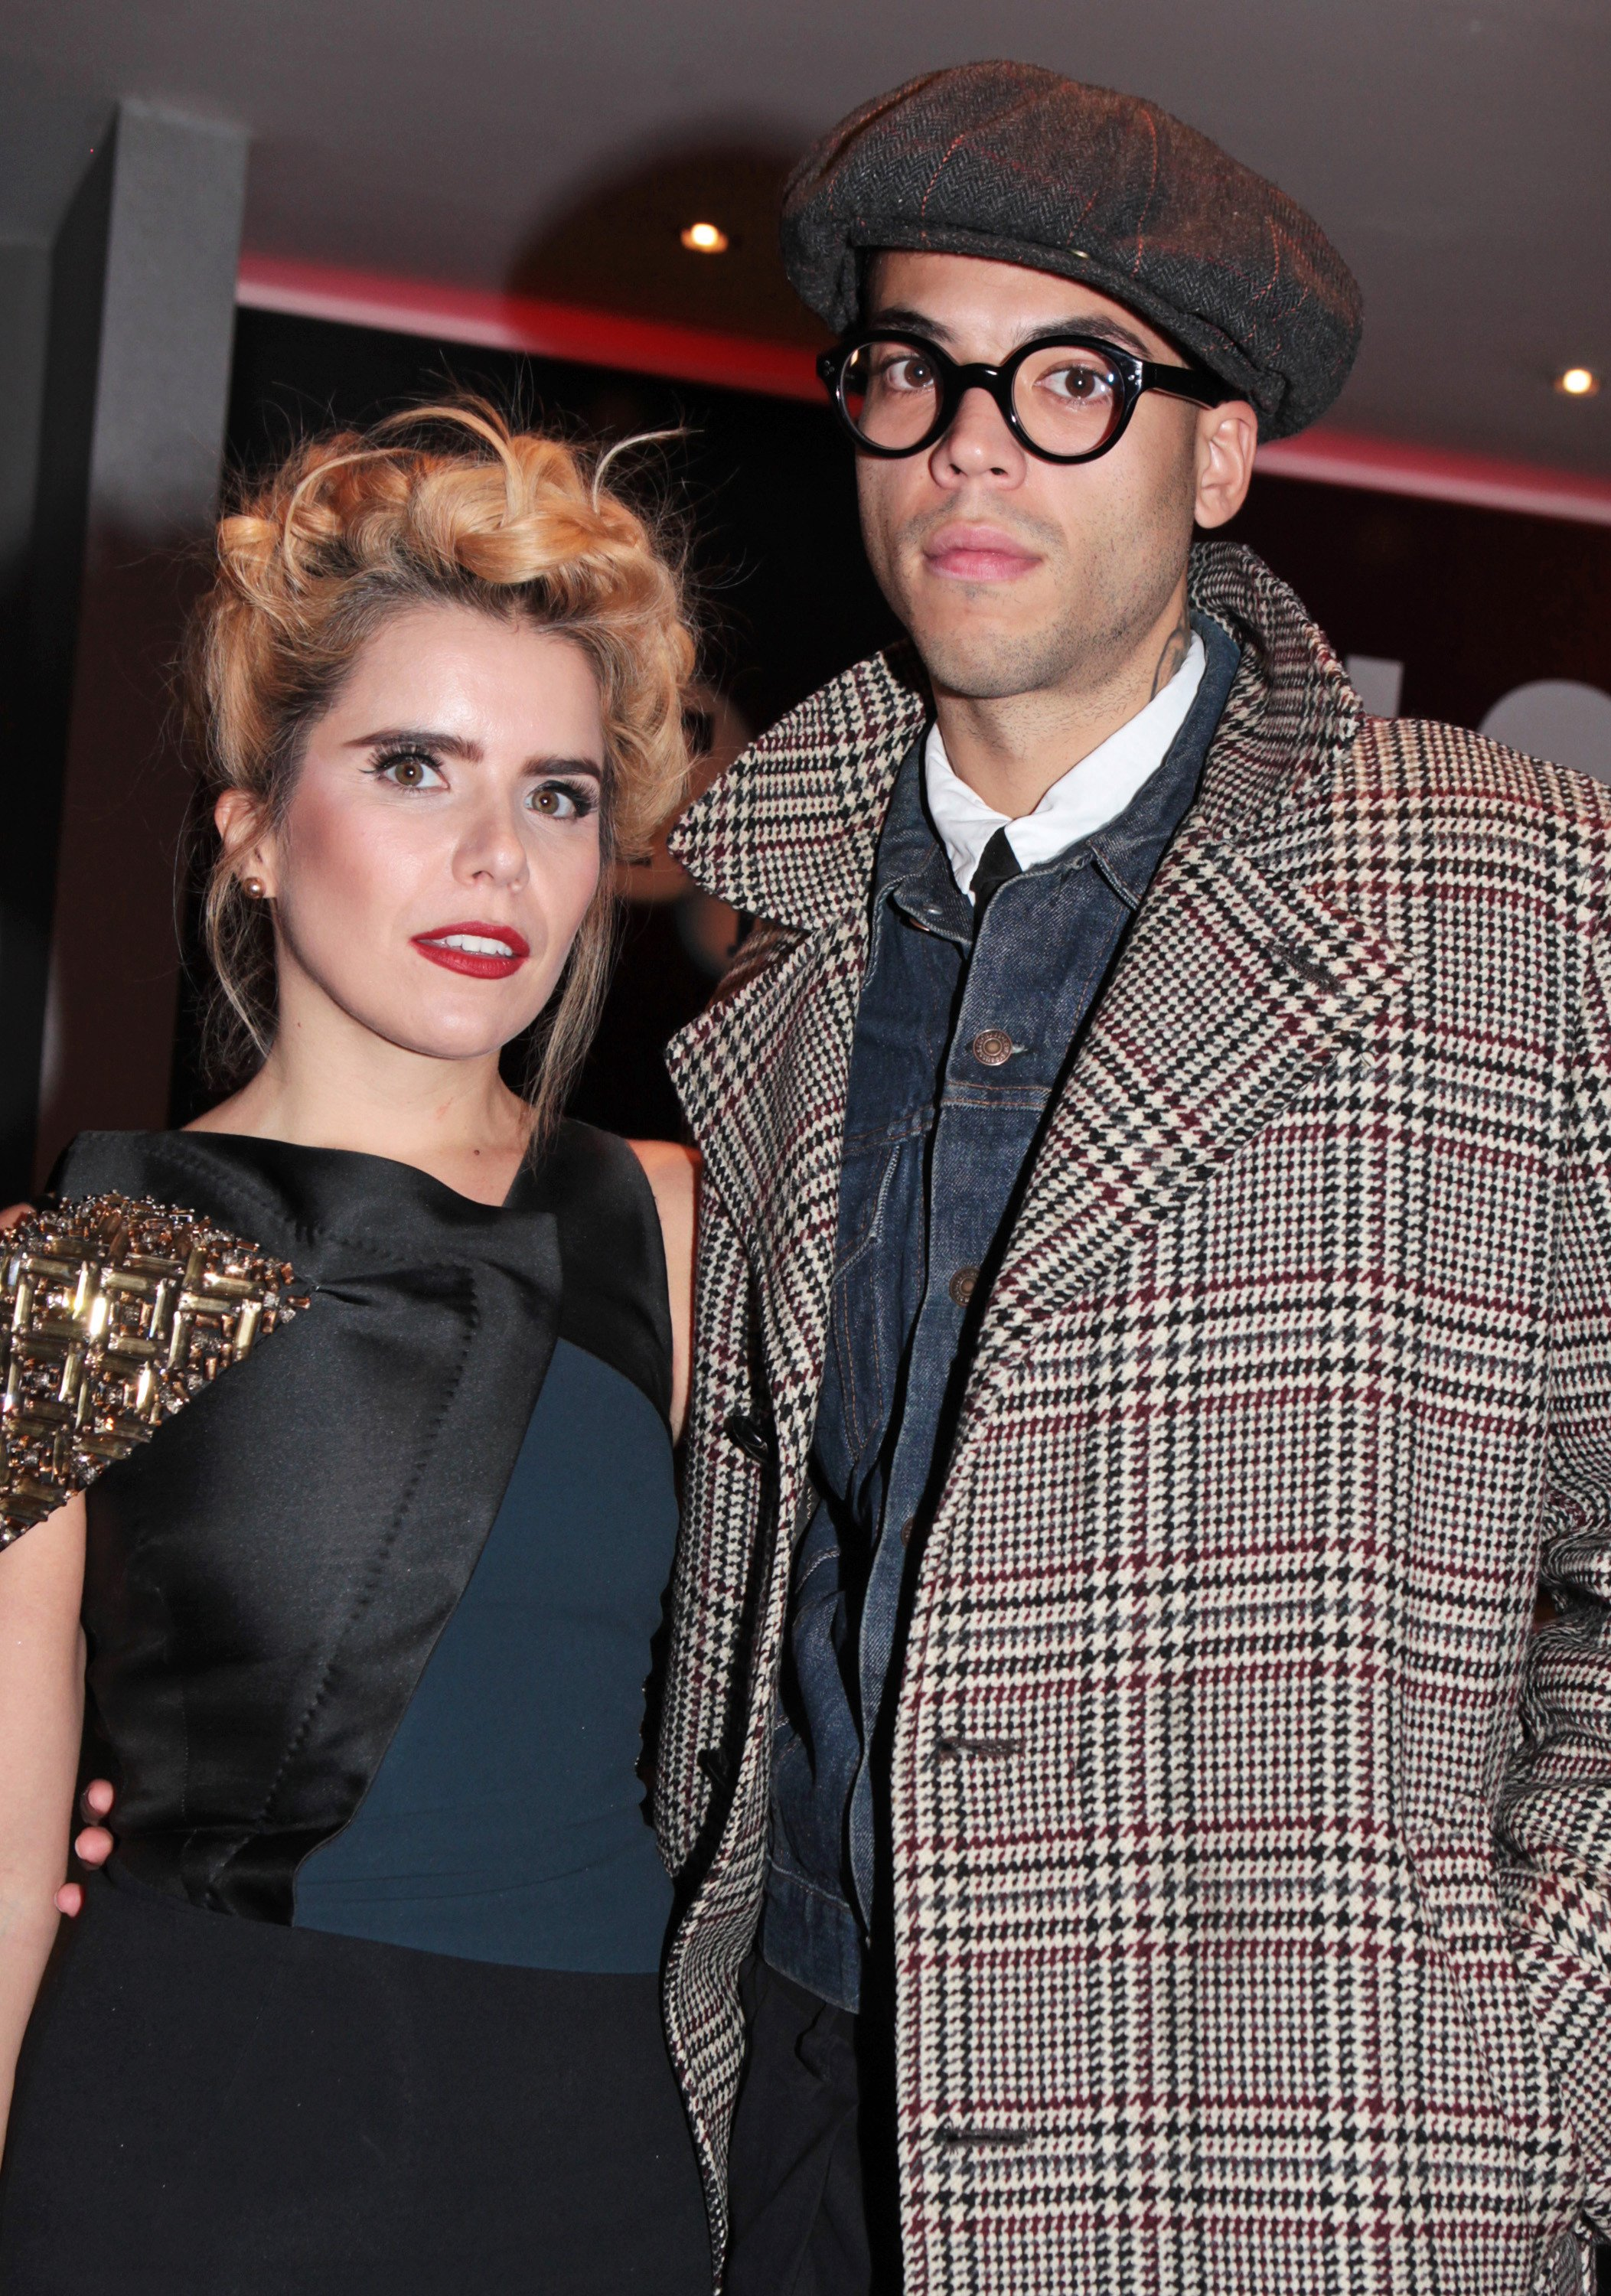 When did Paloma Faith have her baby, do we know the name and gender and who's her partner Leyman Lahcine?